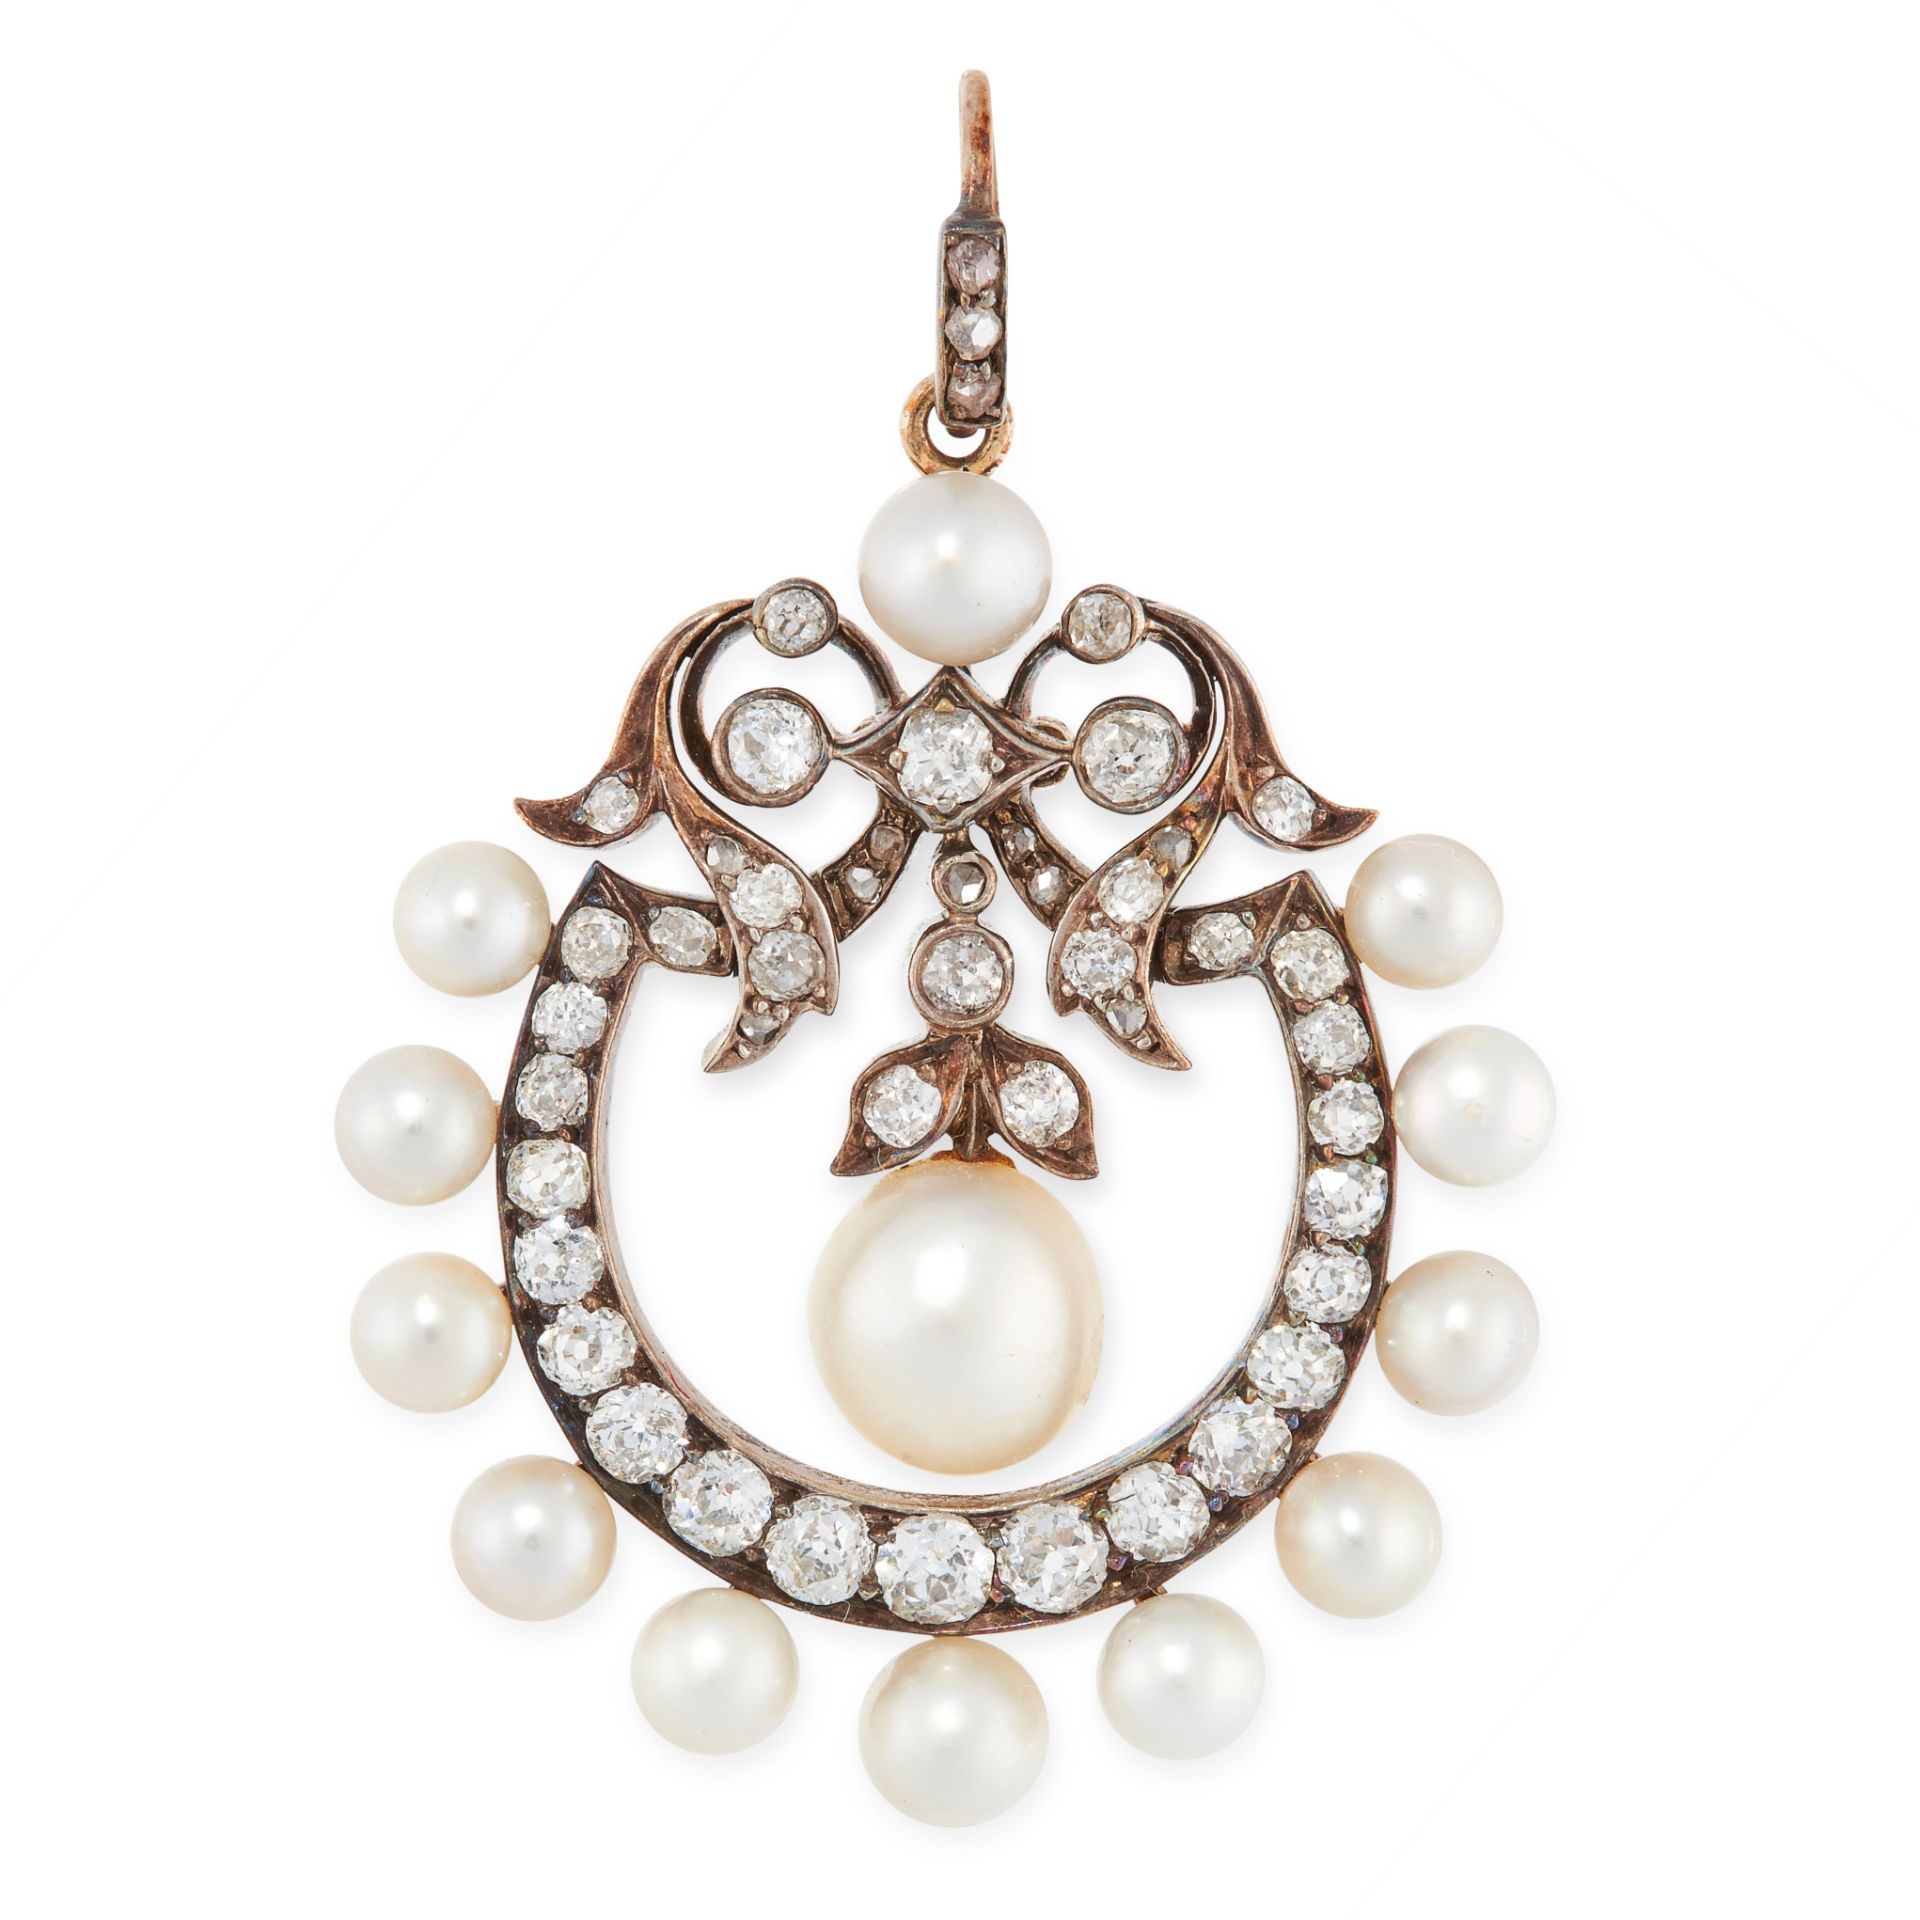 AN ANTIQUE NATURAL PEARL AND DIAMOND PENDANT, LATE 19TH CENTURY in yellow gold and silver, set